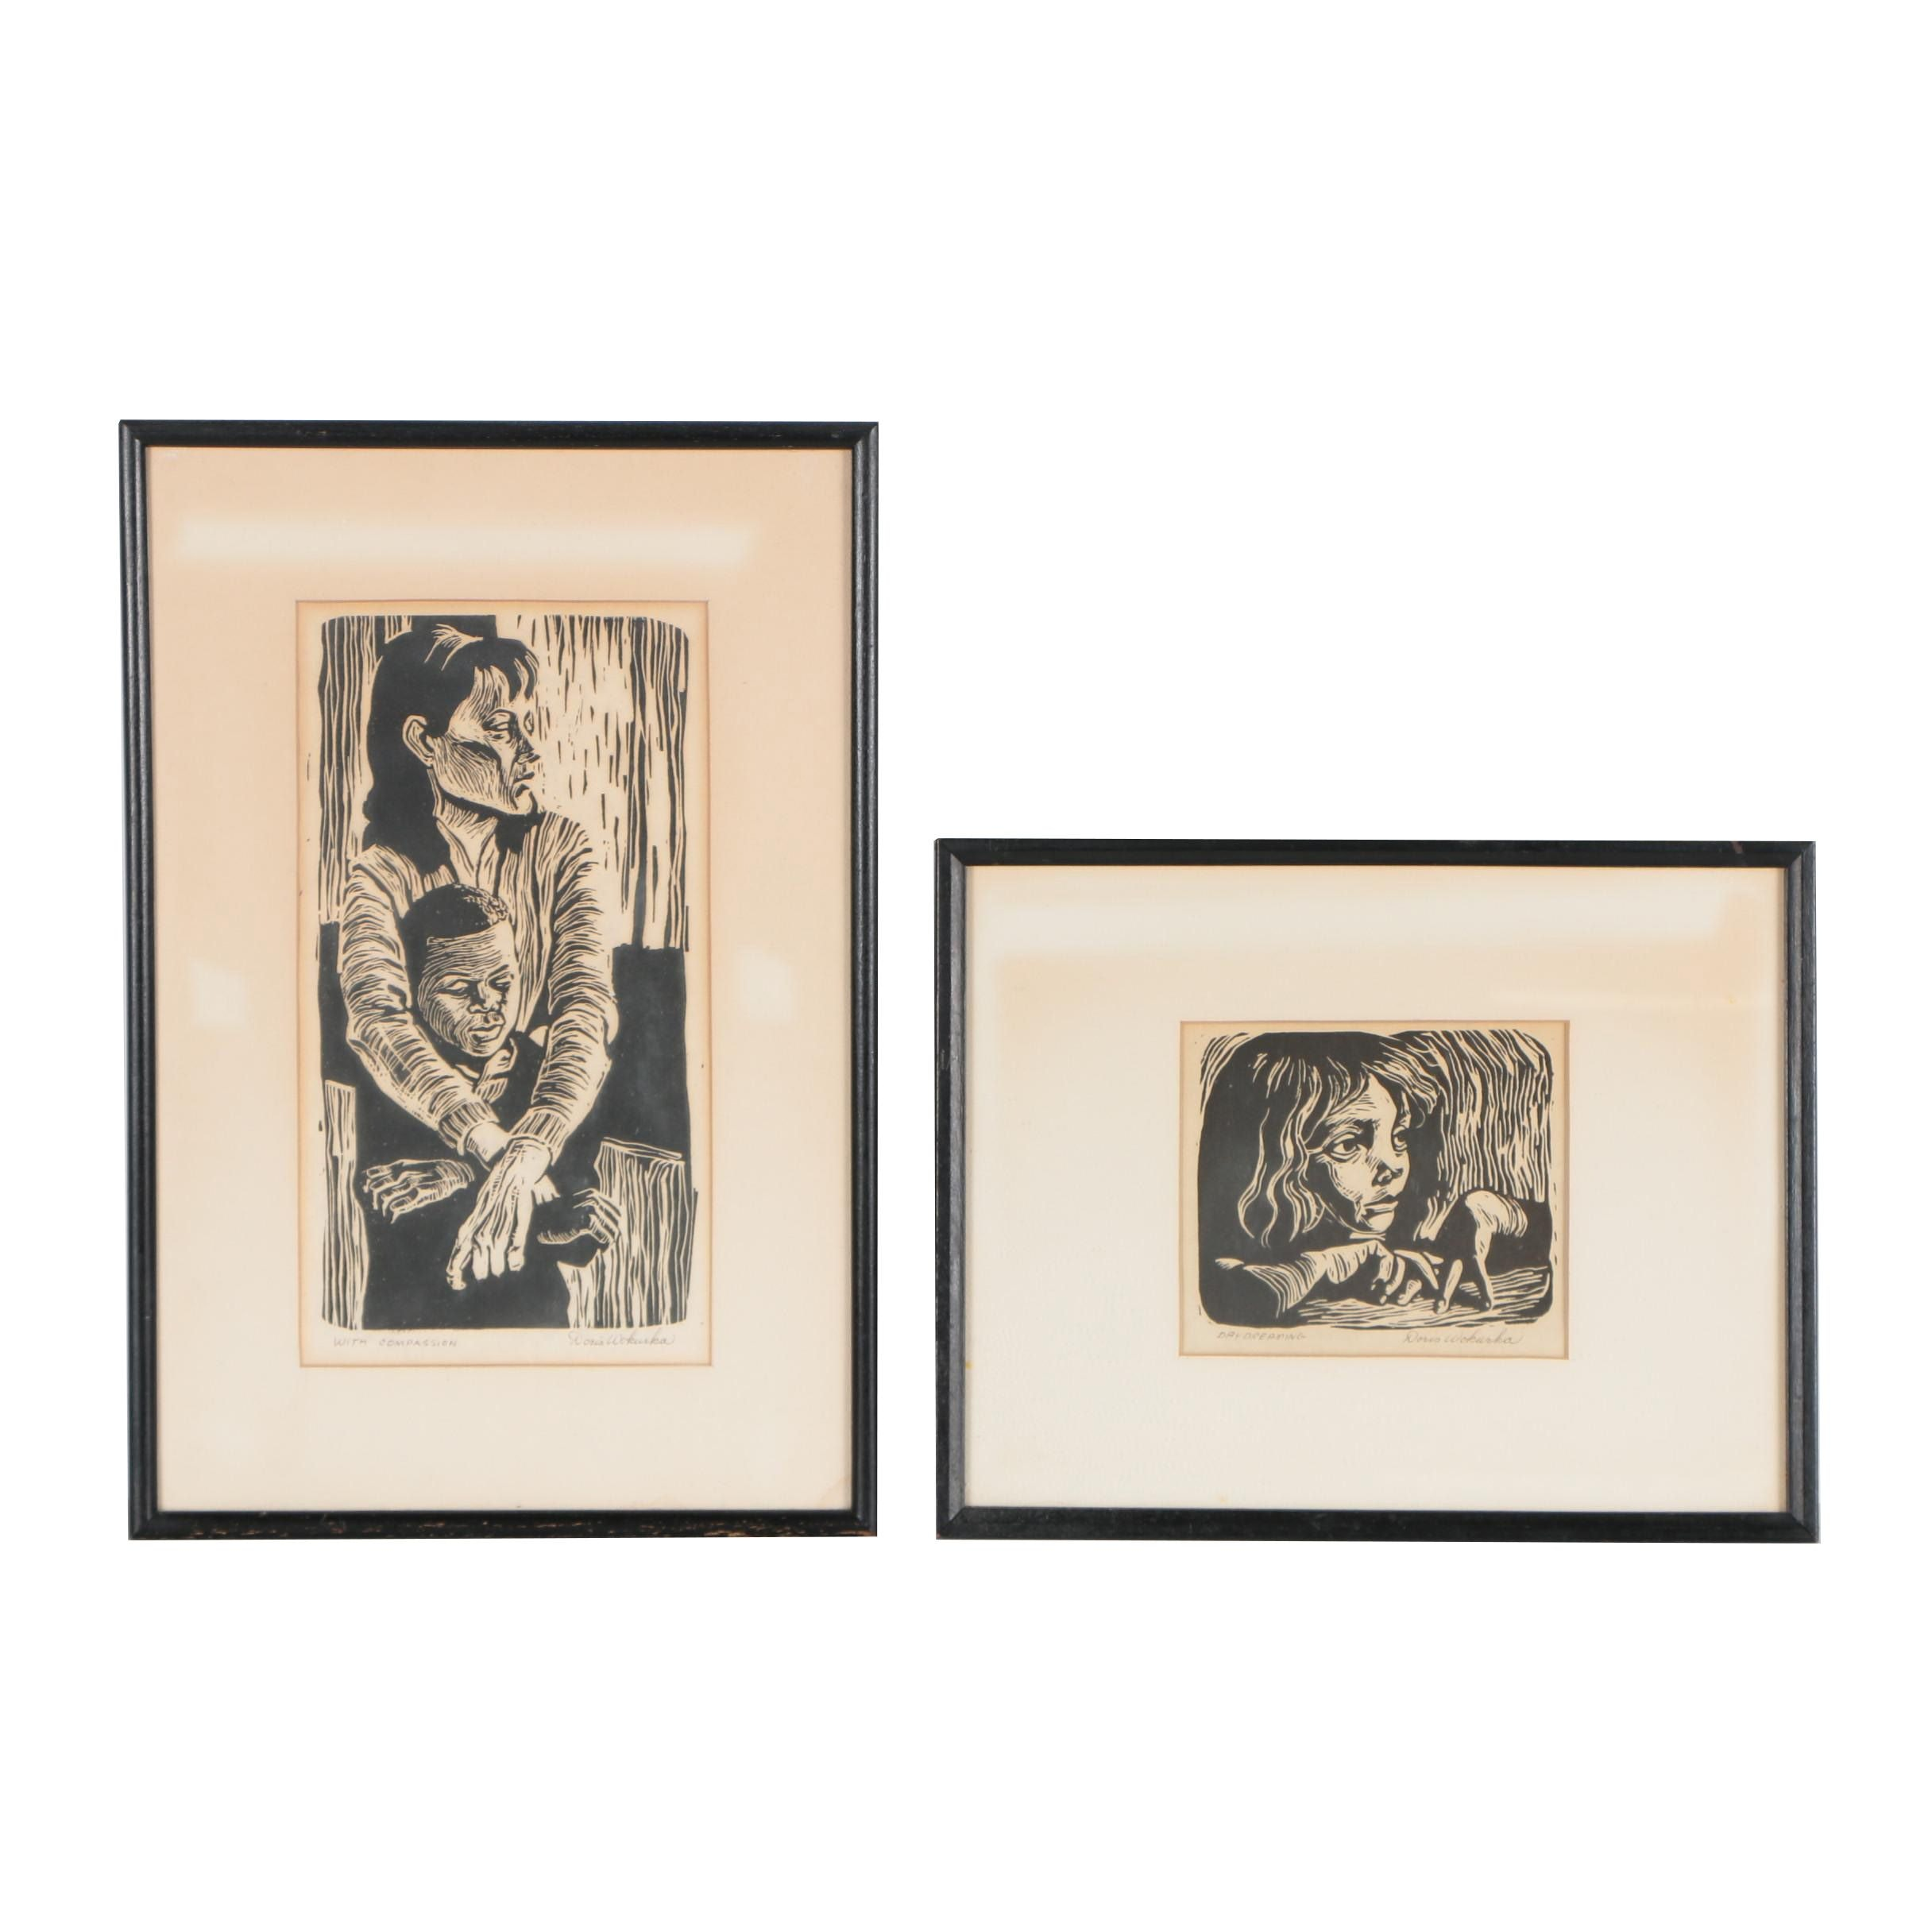 """Doris Wokurka Linocut Prints """"Day Dreaming"""" and """"With Compassion"""""""